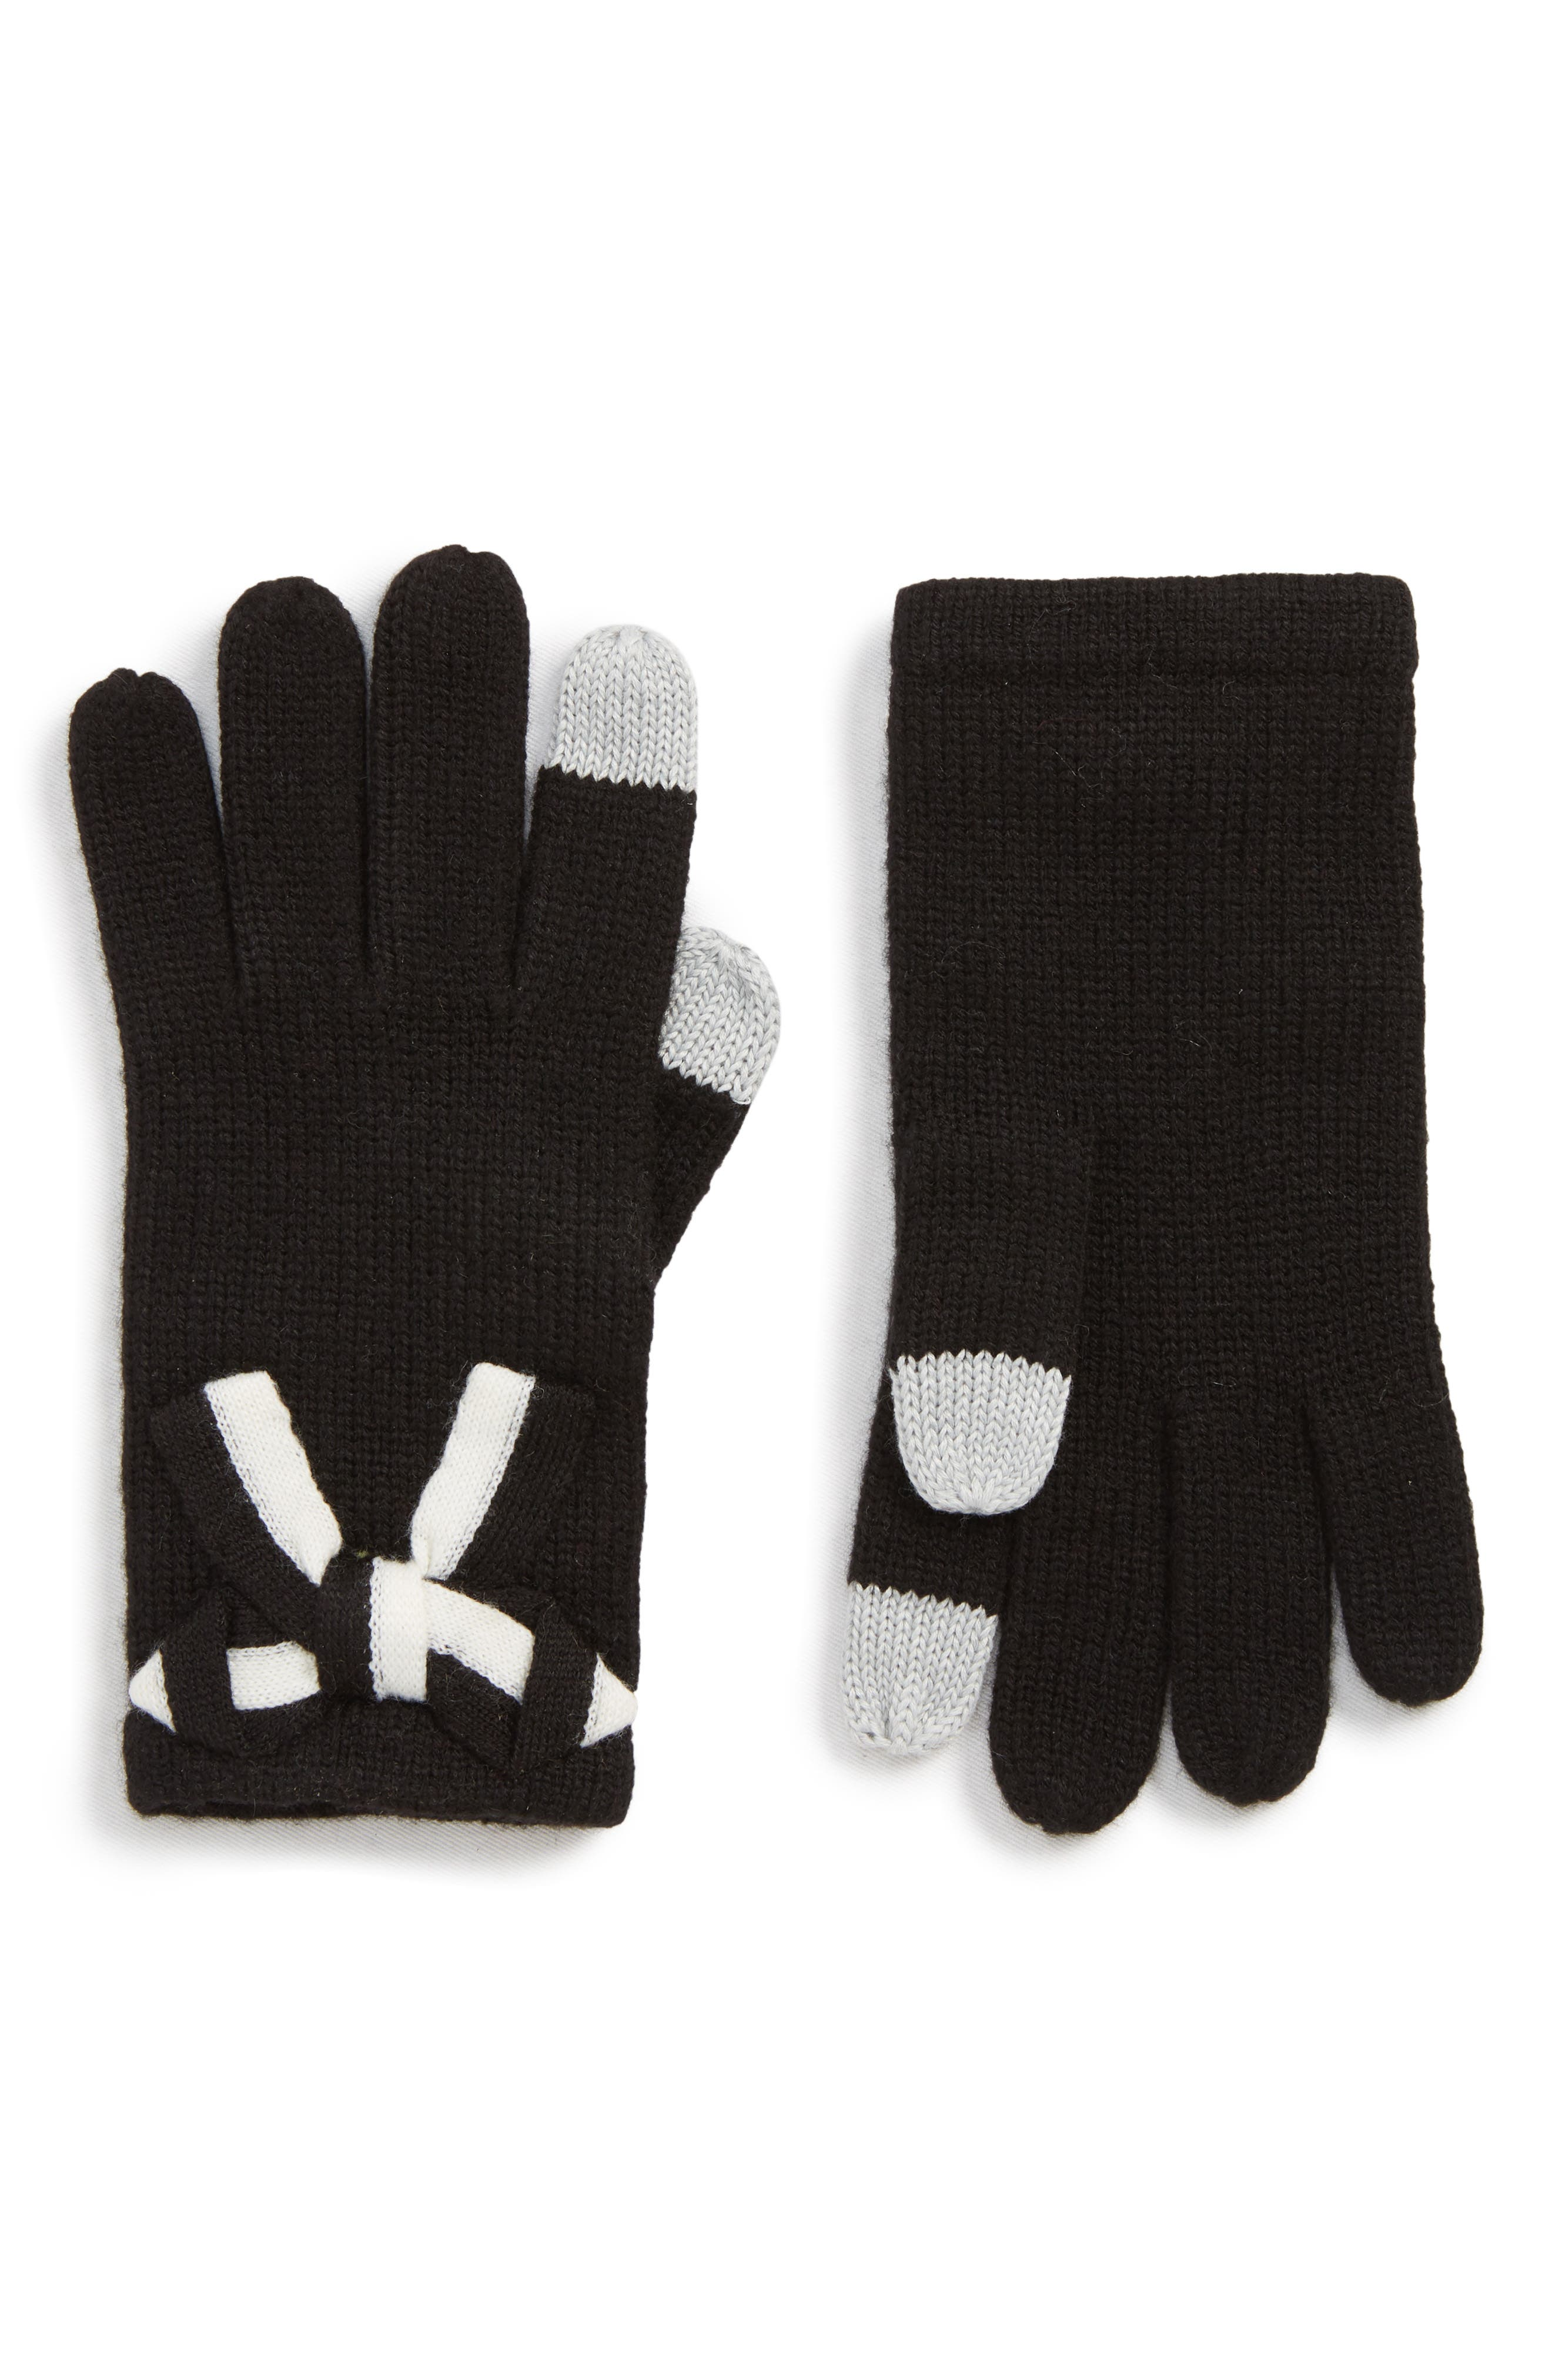 bow appliqué gloves,                             Main thumbnail 1, color,                             BLACK/ CREAM BOW